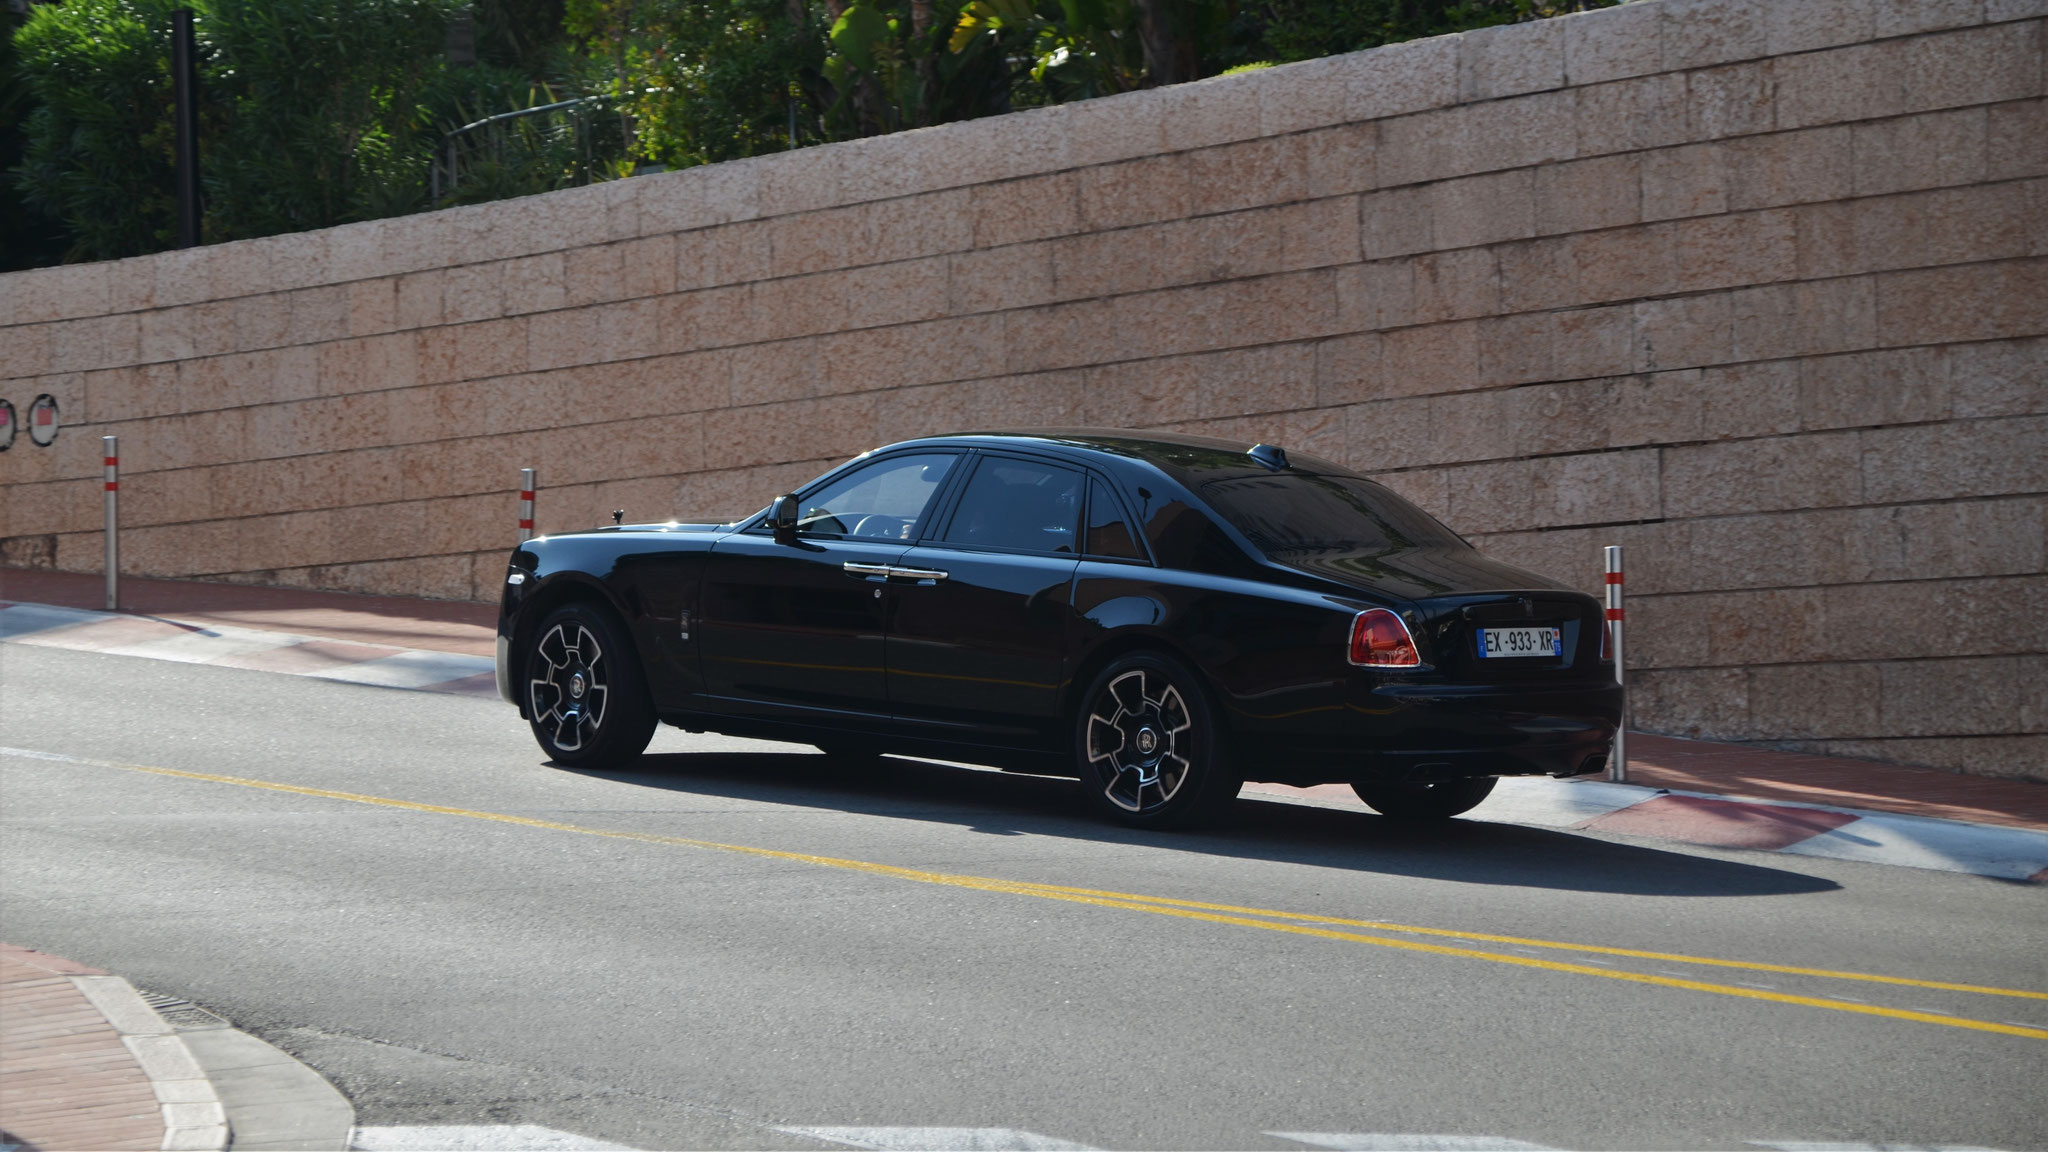 Rolls Royce Ghost Series II Black Badge - EX-933-XR-75 (FRA)